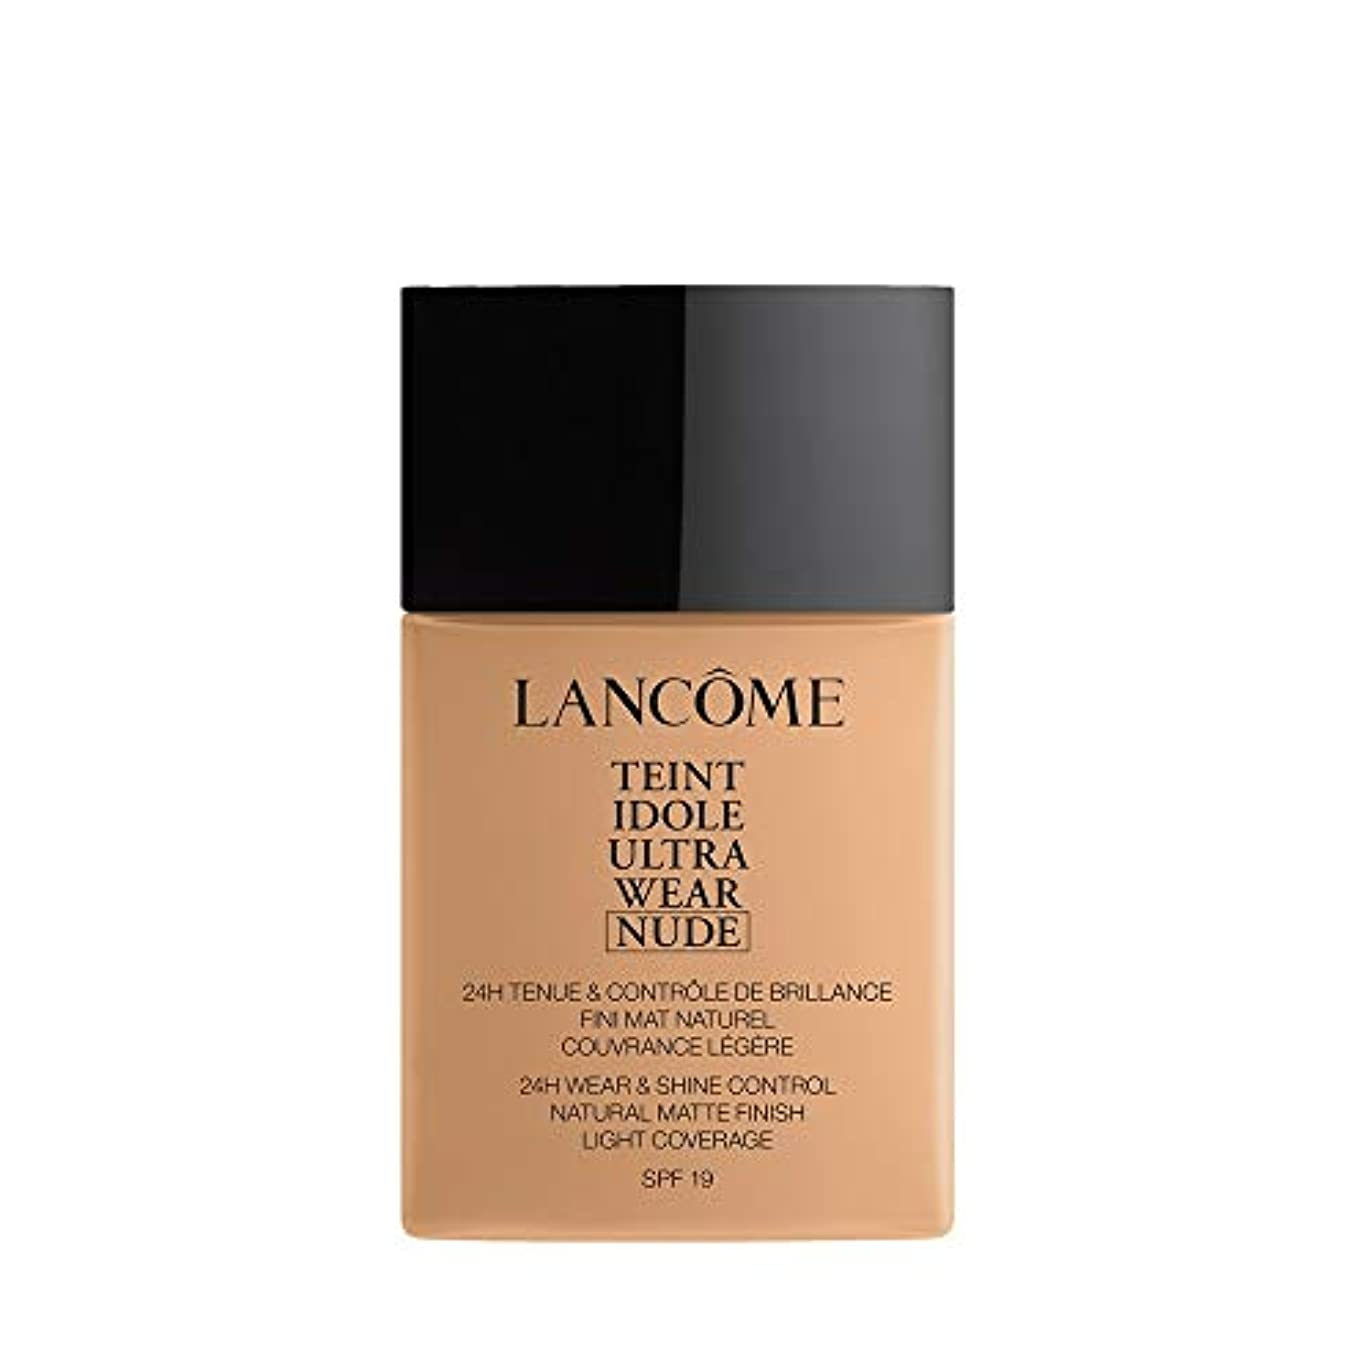 到着大胆課税ランコム Teint Idole Ultra Wear Nude Foundation SPF19 - # 03 Beige Diaphane 40ml/1.3oz並行輸入品